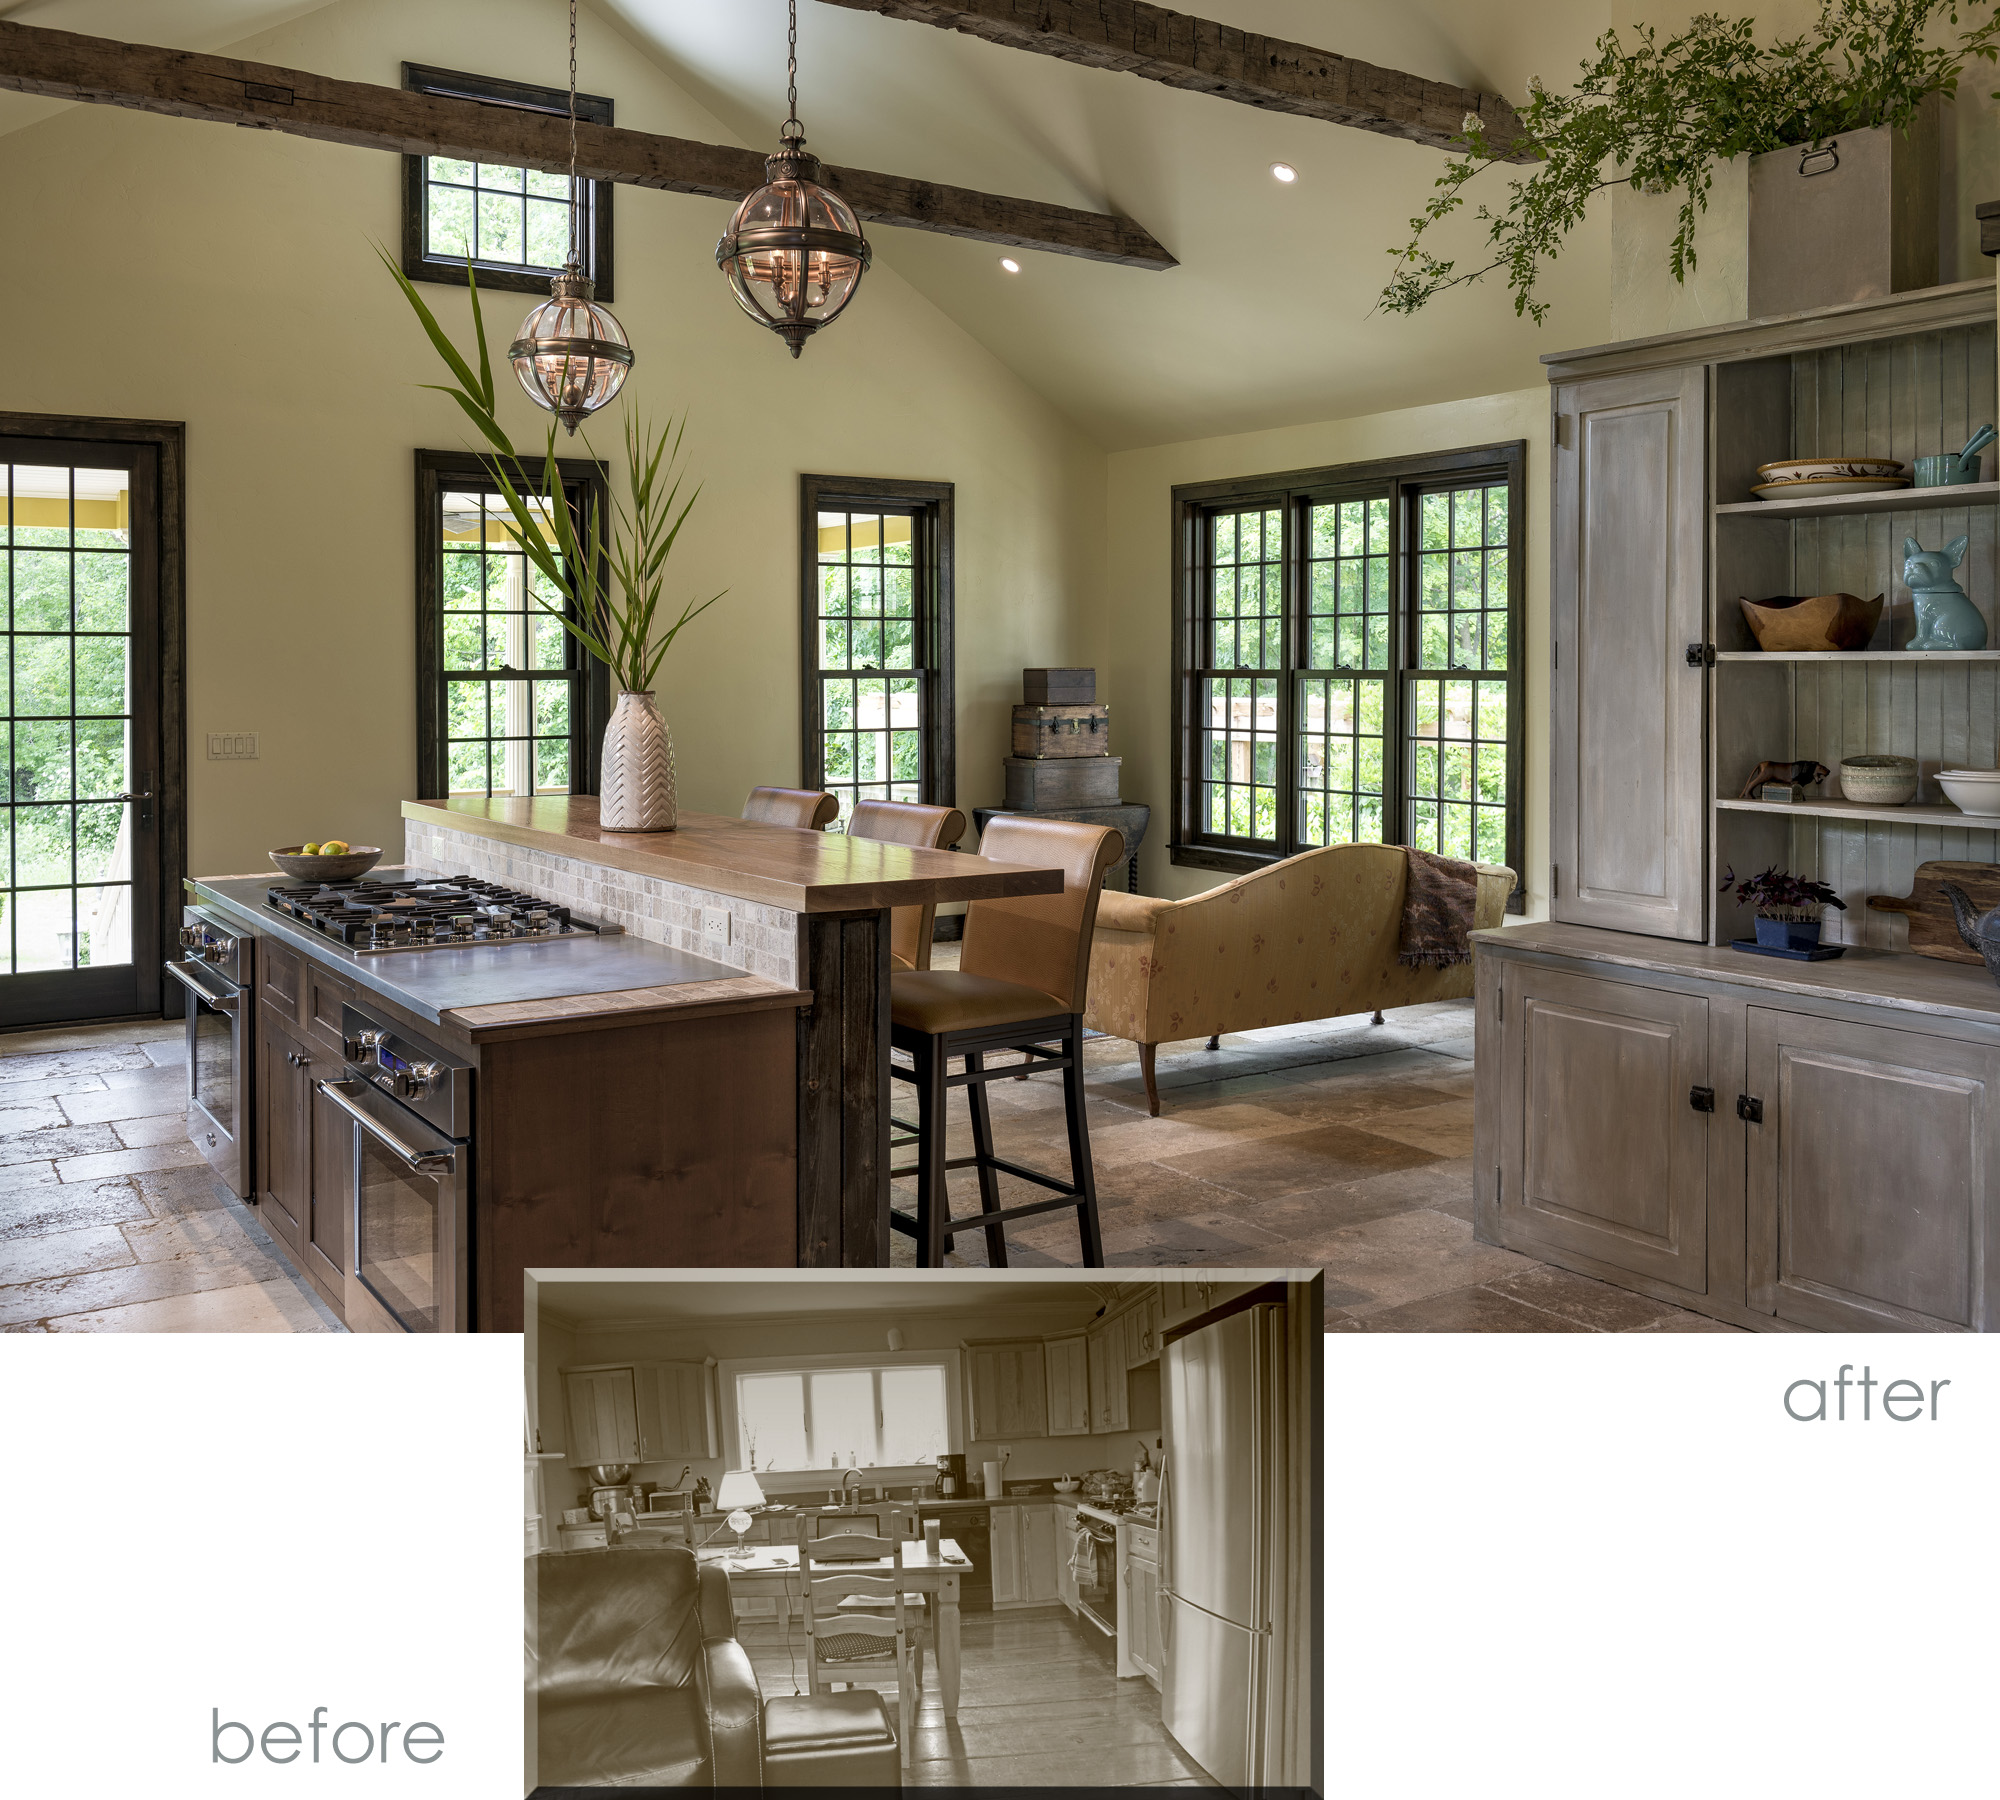 Kitchen/Family Room Before and After